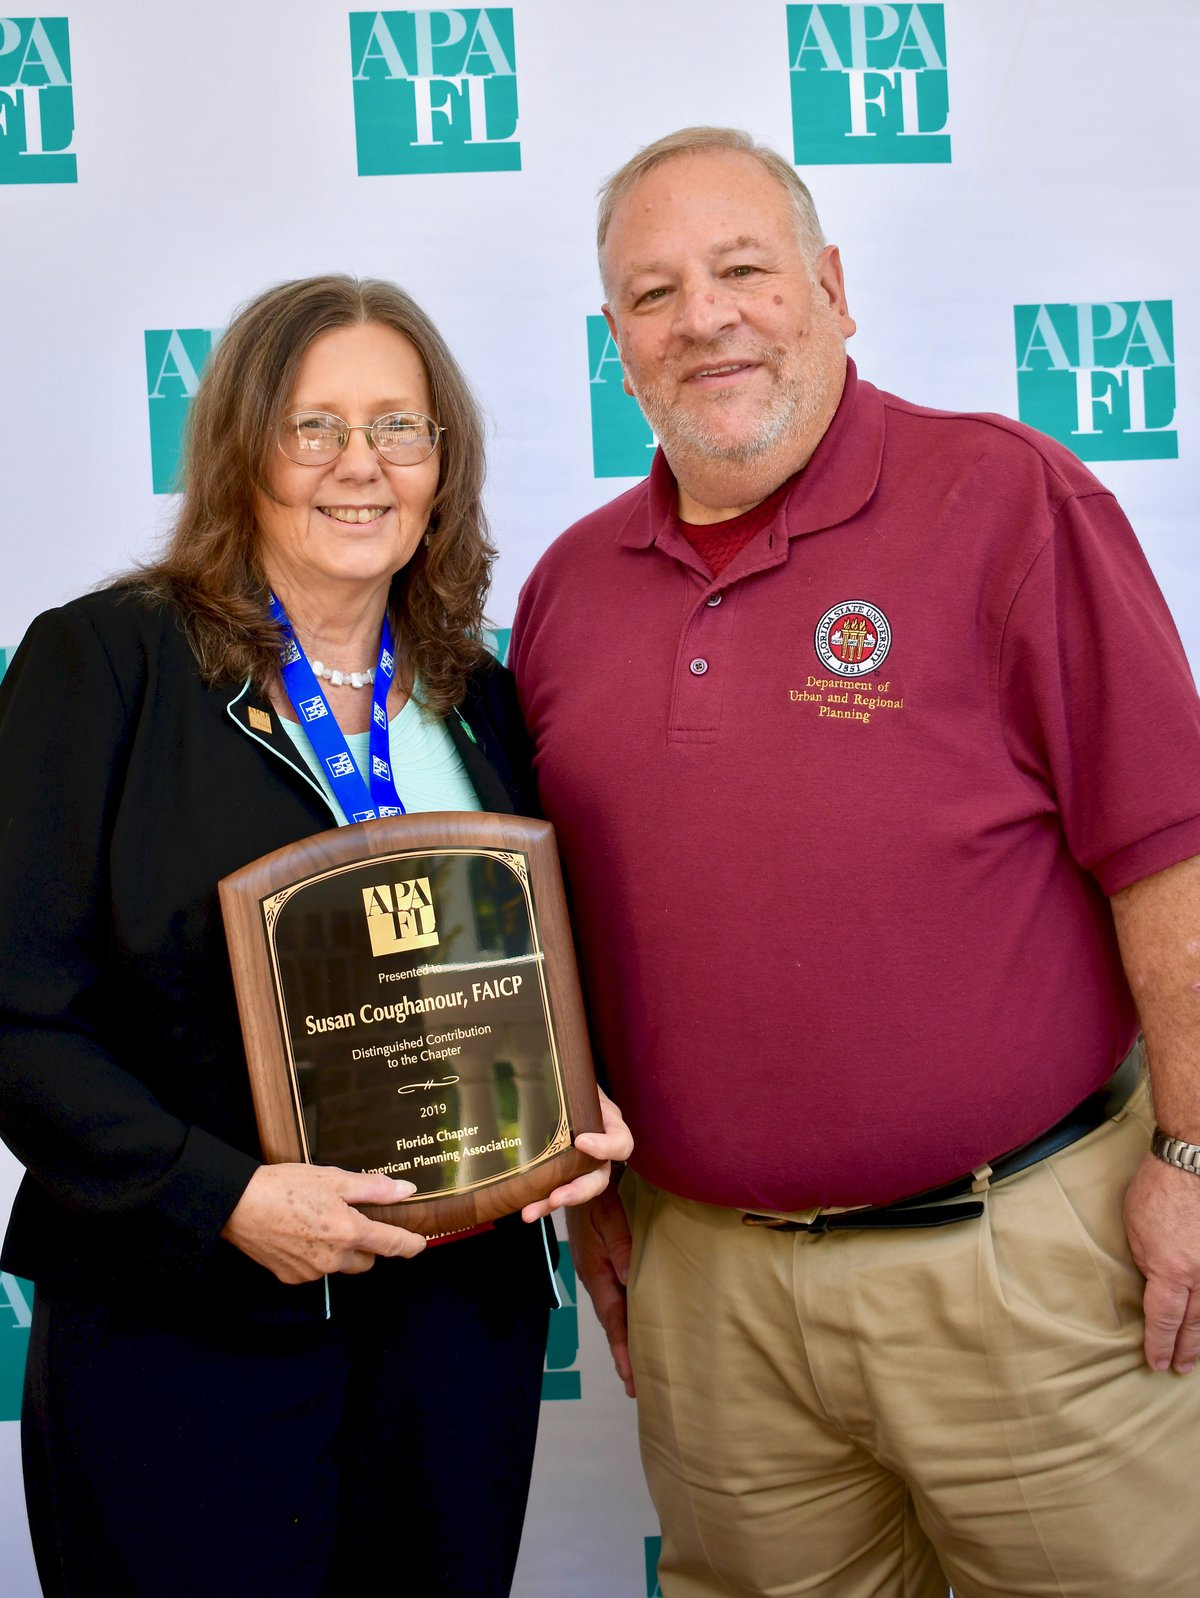 Susan Coughnaour FAICP 2019 Chapter Service Award